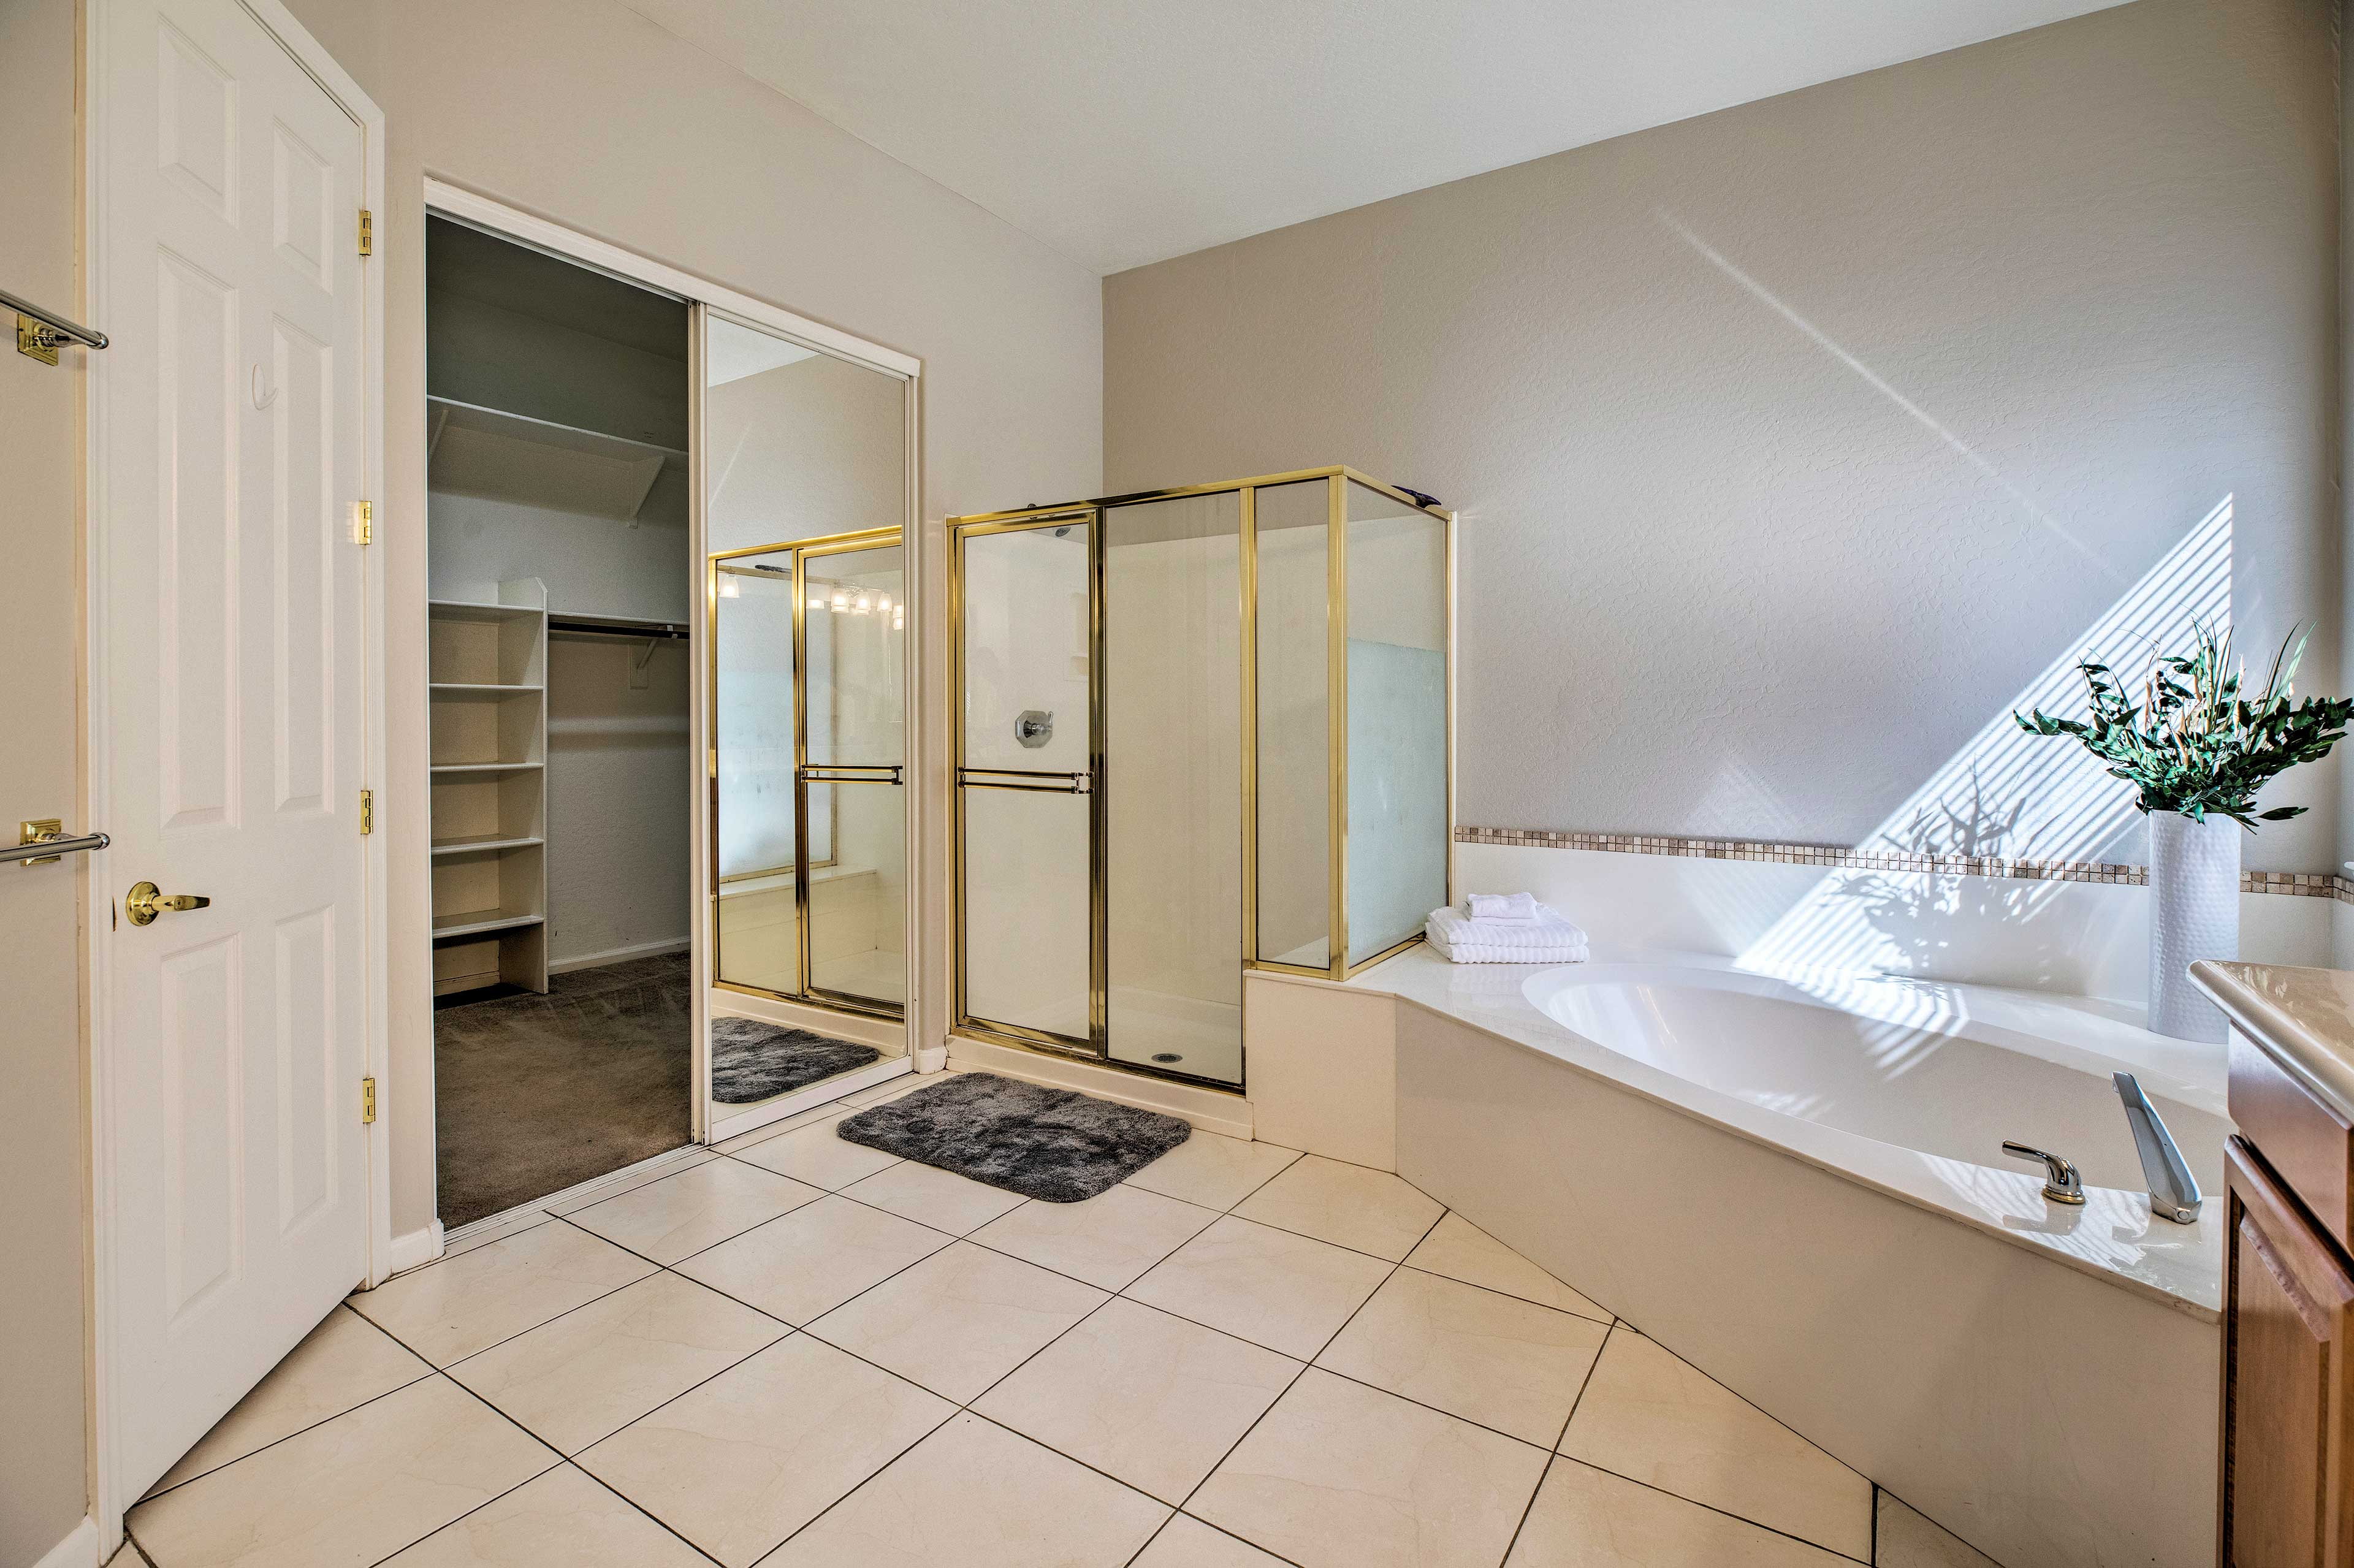 There's also a spacious walk-in closet.